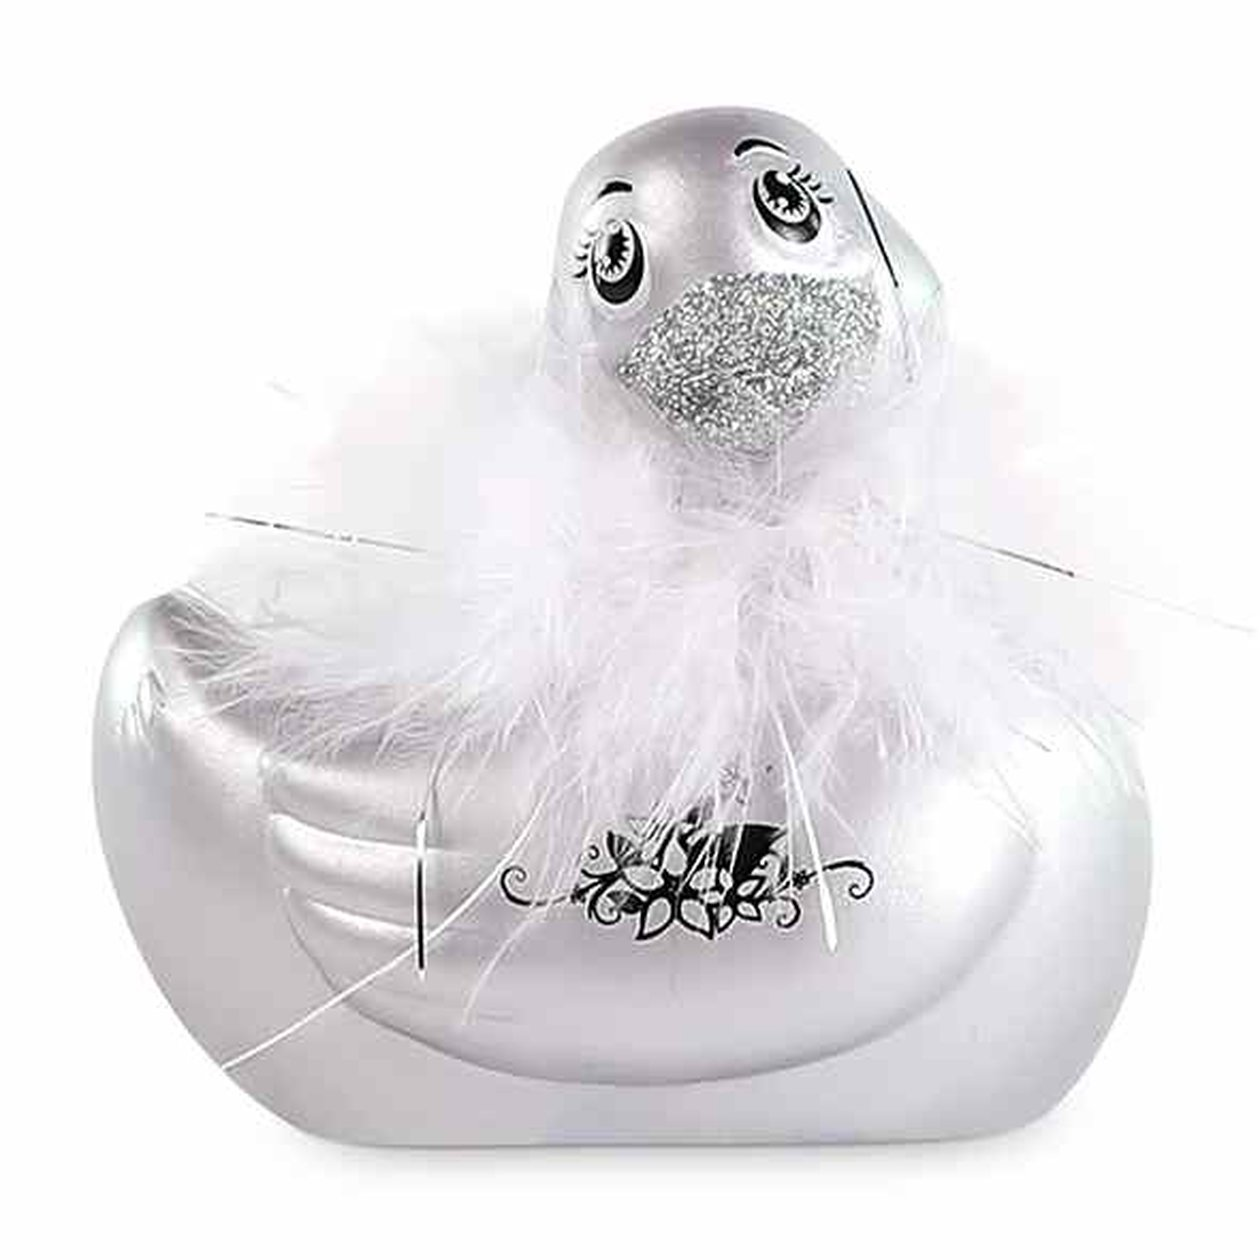 I Rub My Duckie 2.0 Paris (Silver)